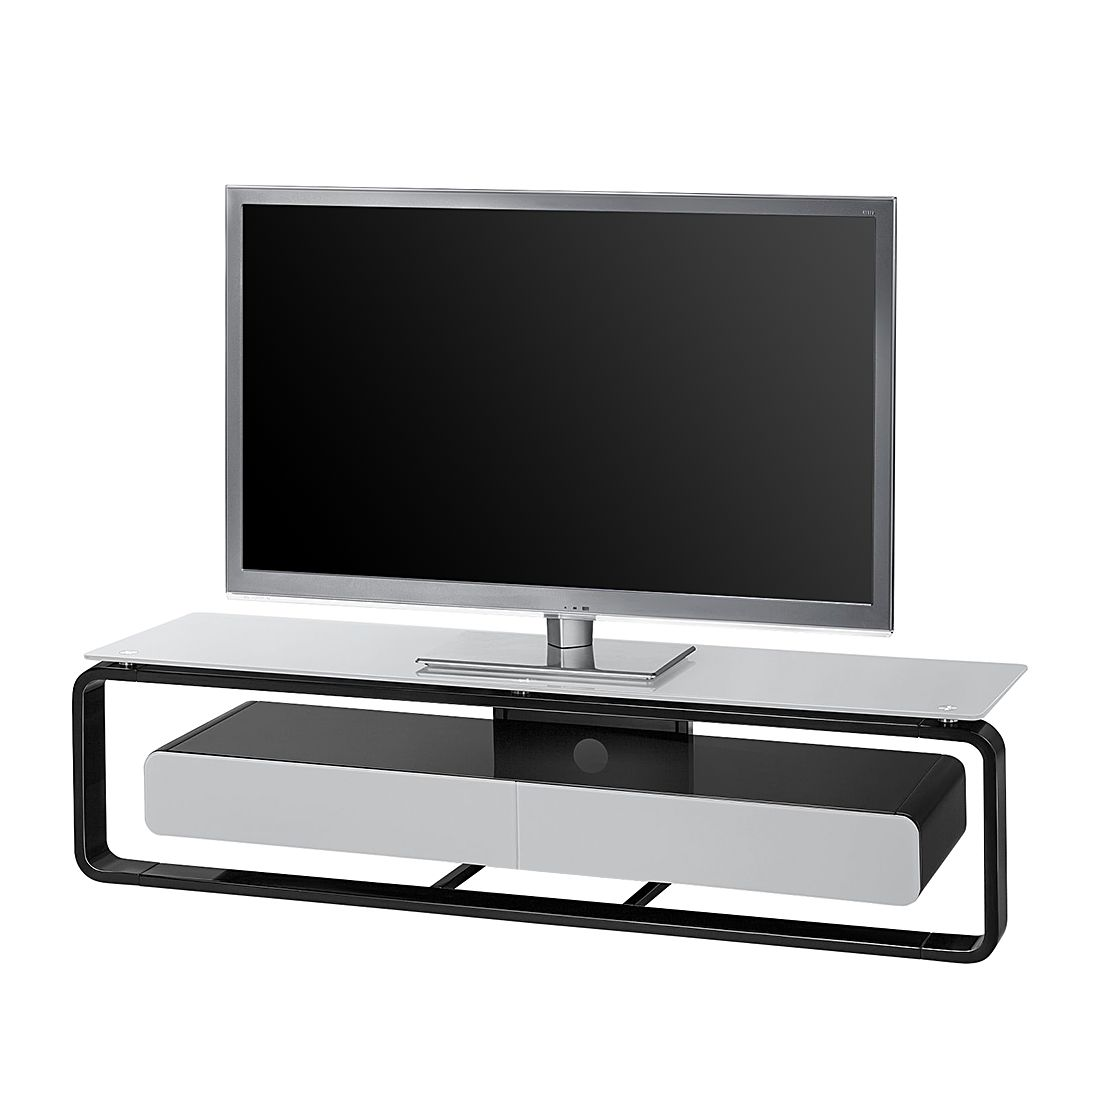 tv rack shanon schwarz glas platingrau 150 cm maja. Black Bedroom Furniture Sets. Home Design Ideas